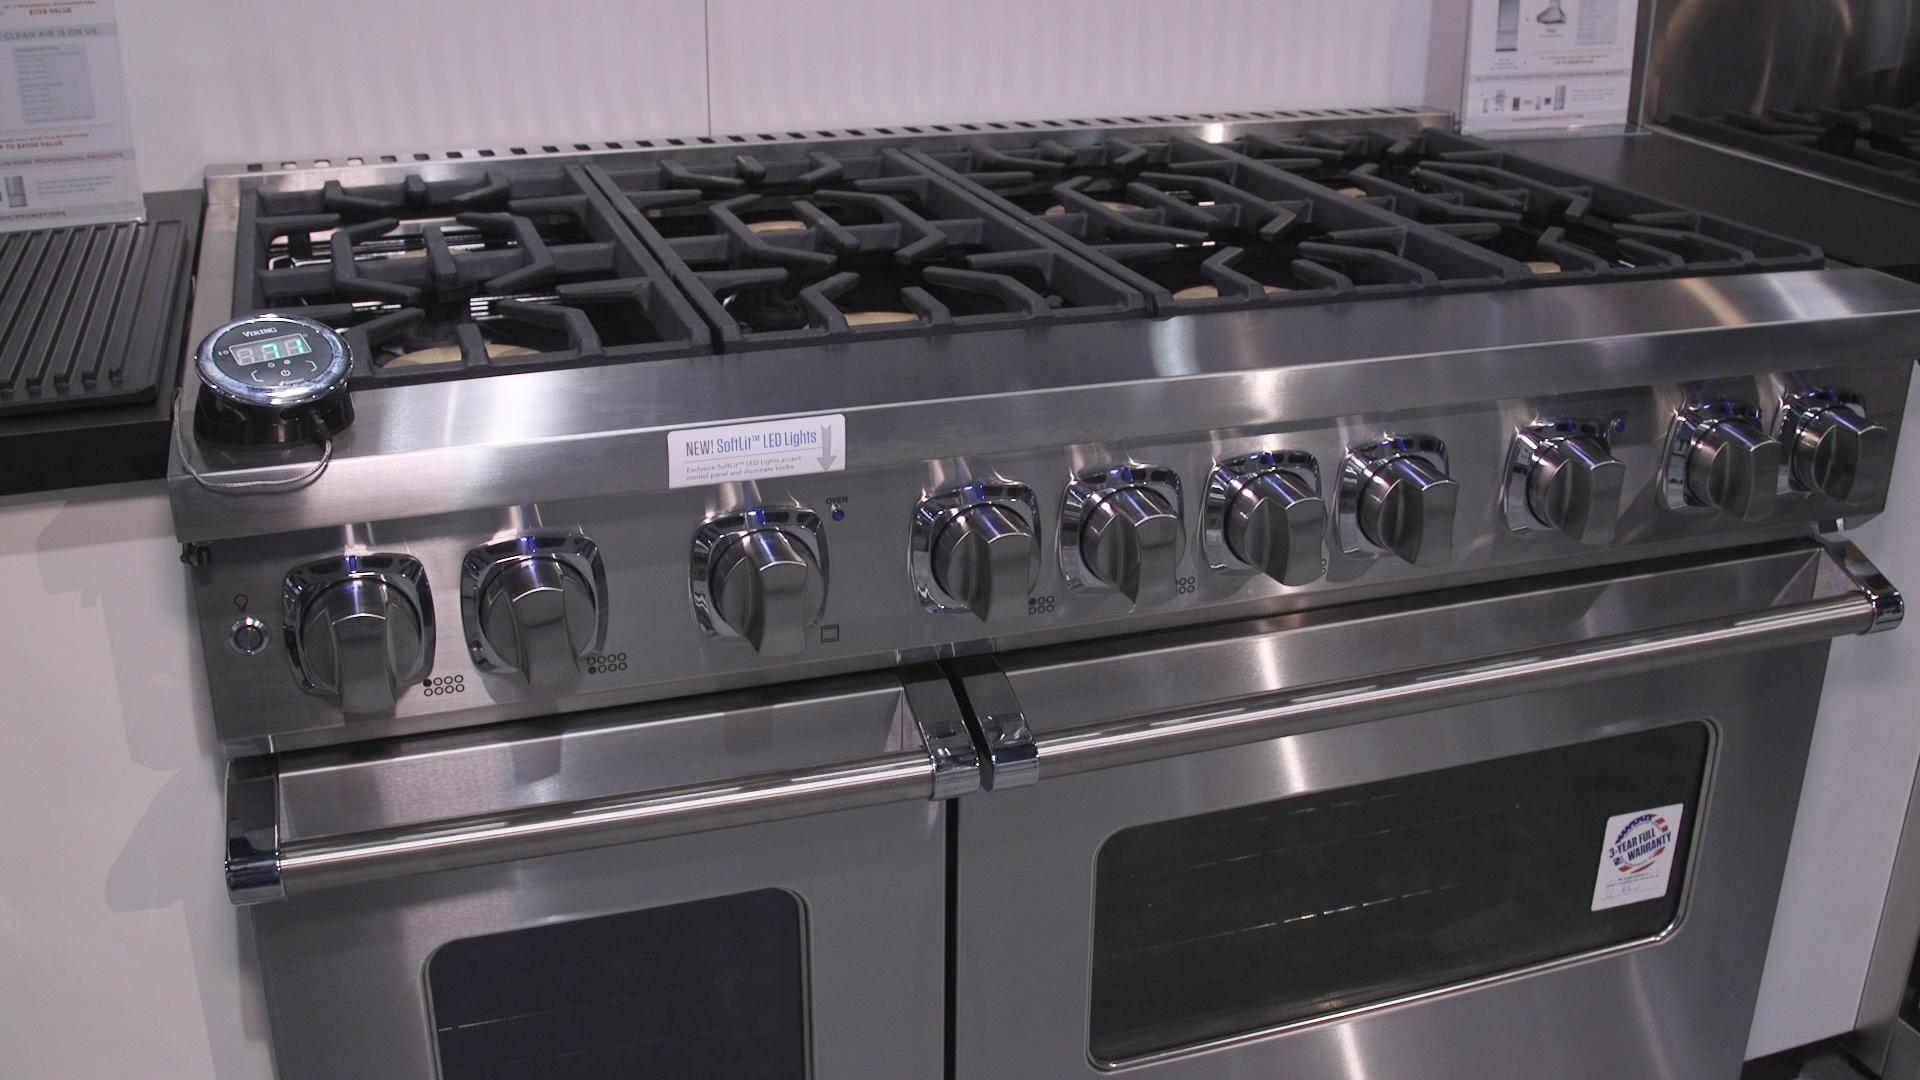 kitchen anyway s stove is what reviewed oven difference com a this range ovens whats the features